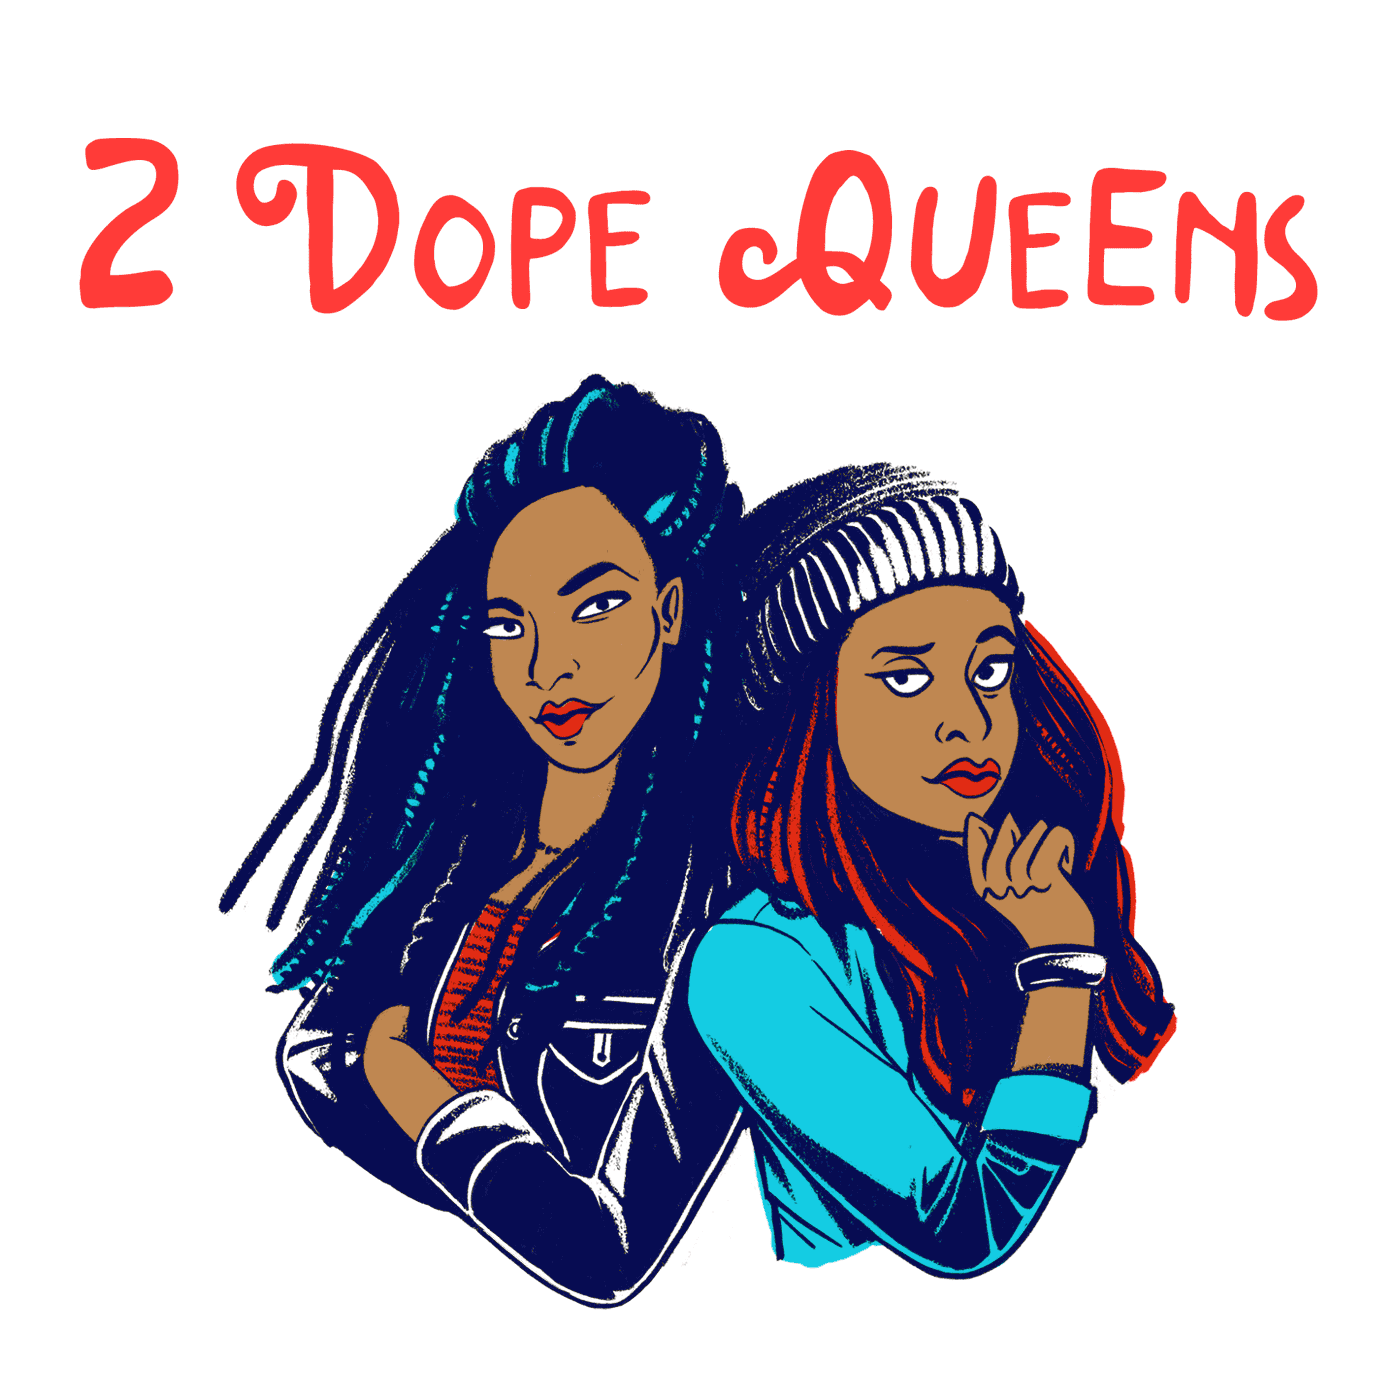 2 Dope Queens animated logo